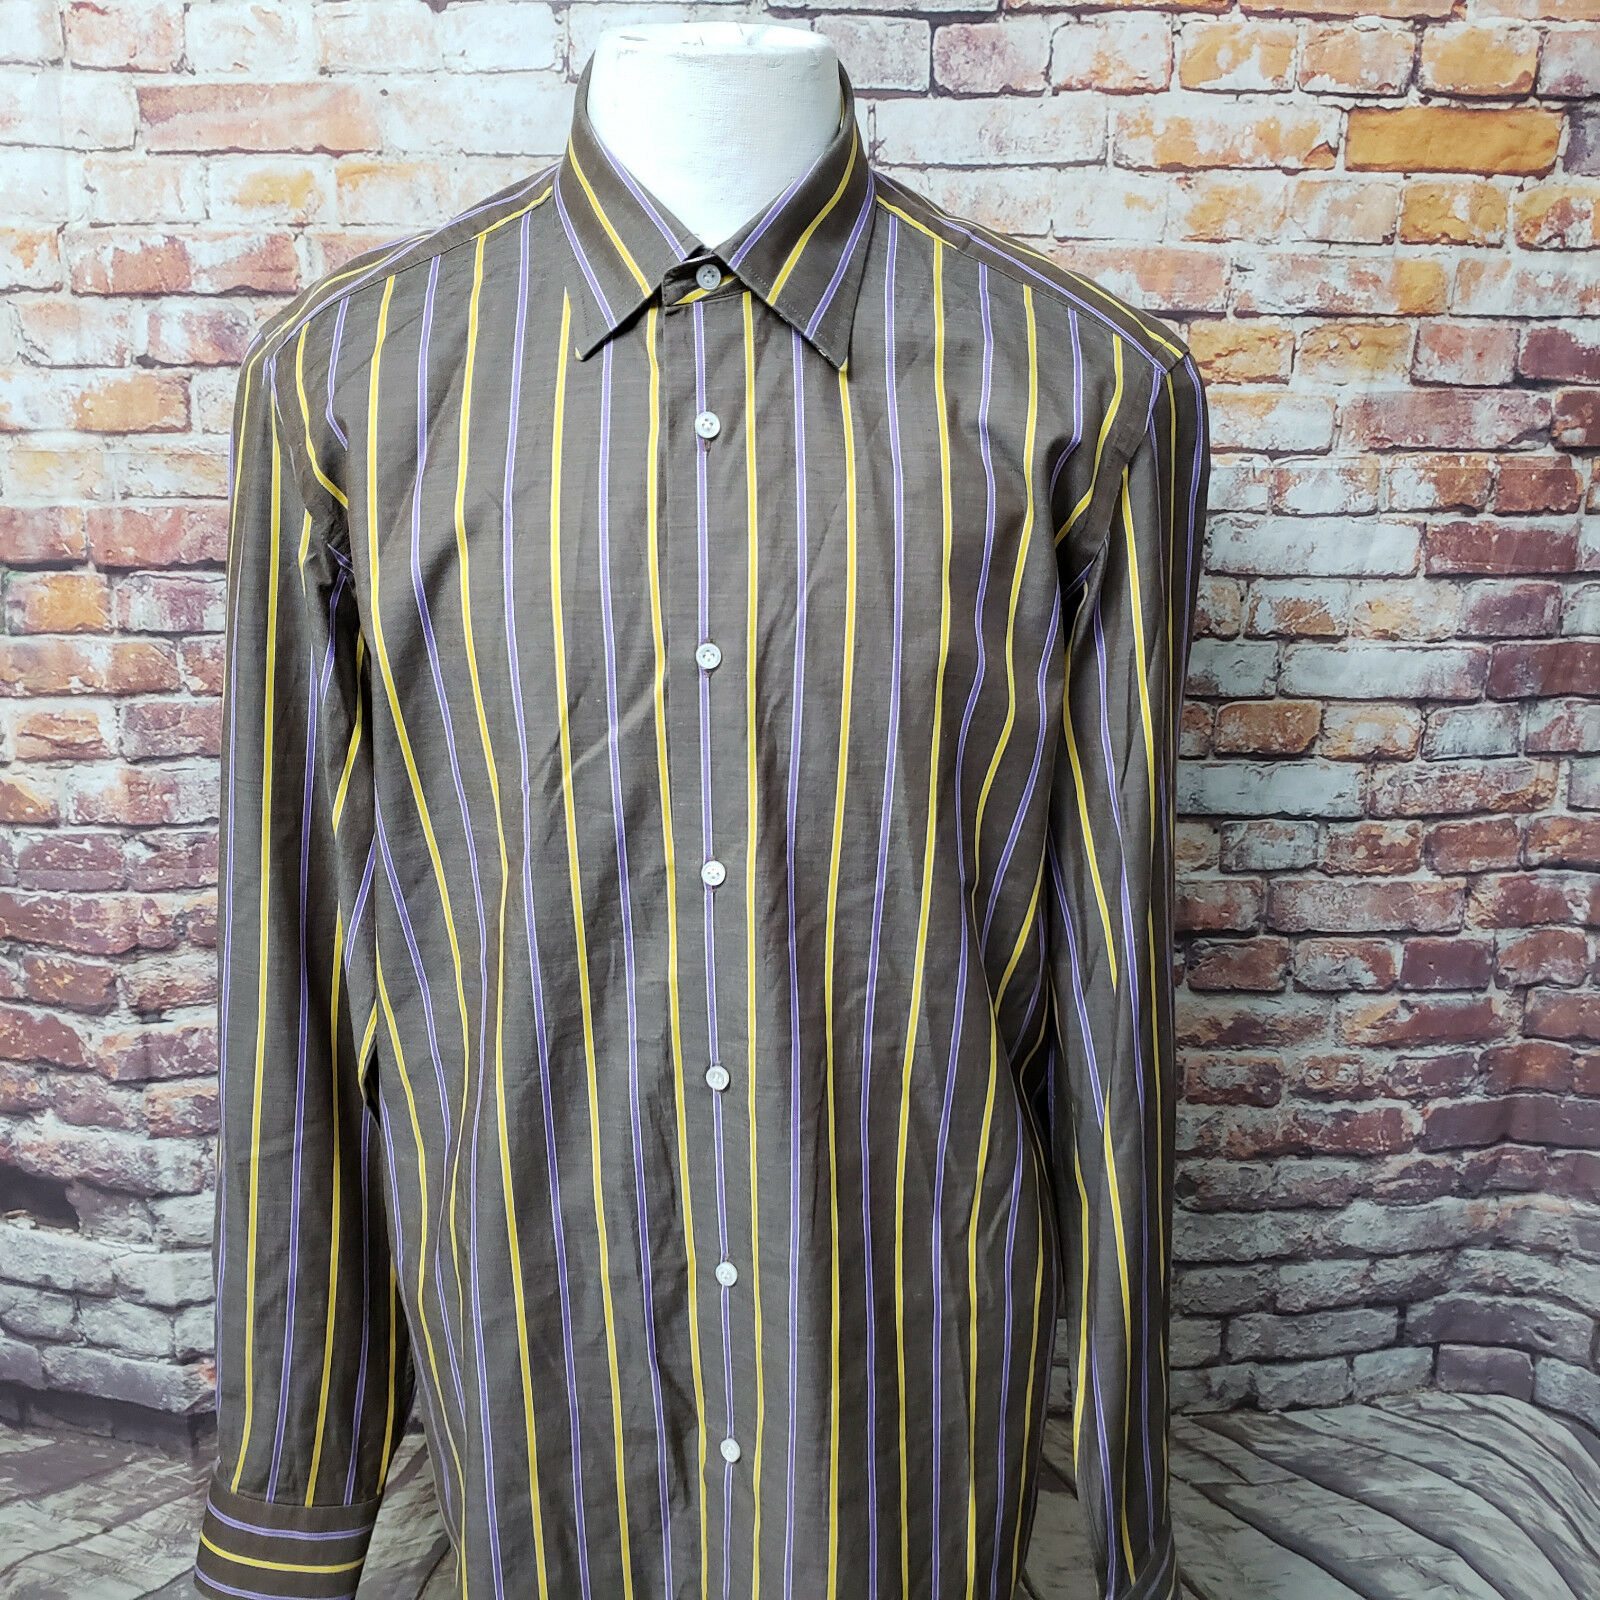 LUCIANO BARBERA STRIPED COTTON LONG SLEEVE CASUAL SHIRT SIZE L A90-18